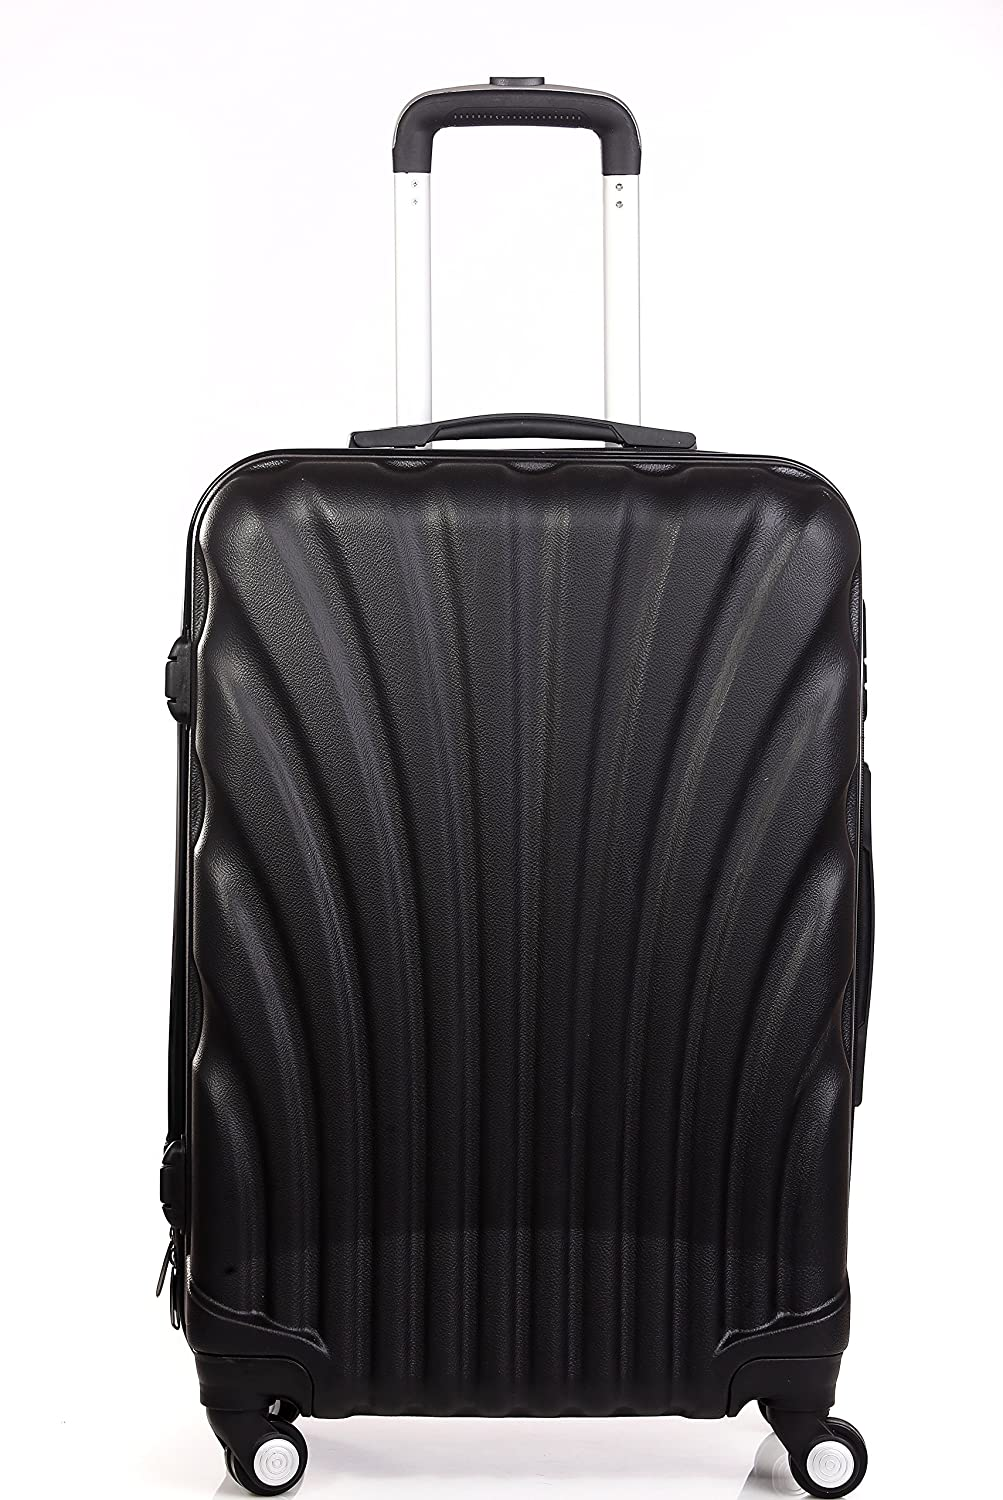 Americano Trolley Bag Polycarbonate At60blk 24 Space